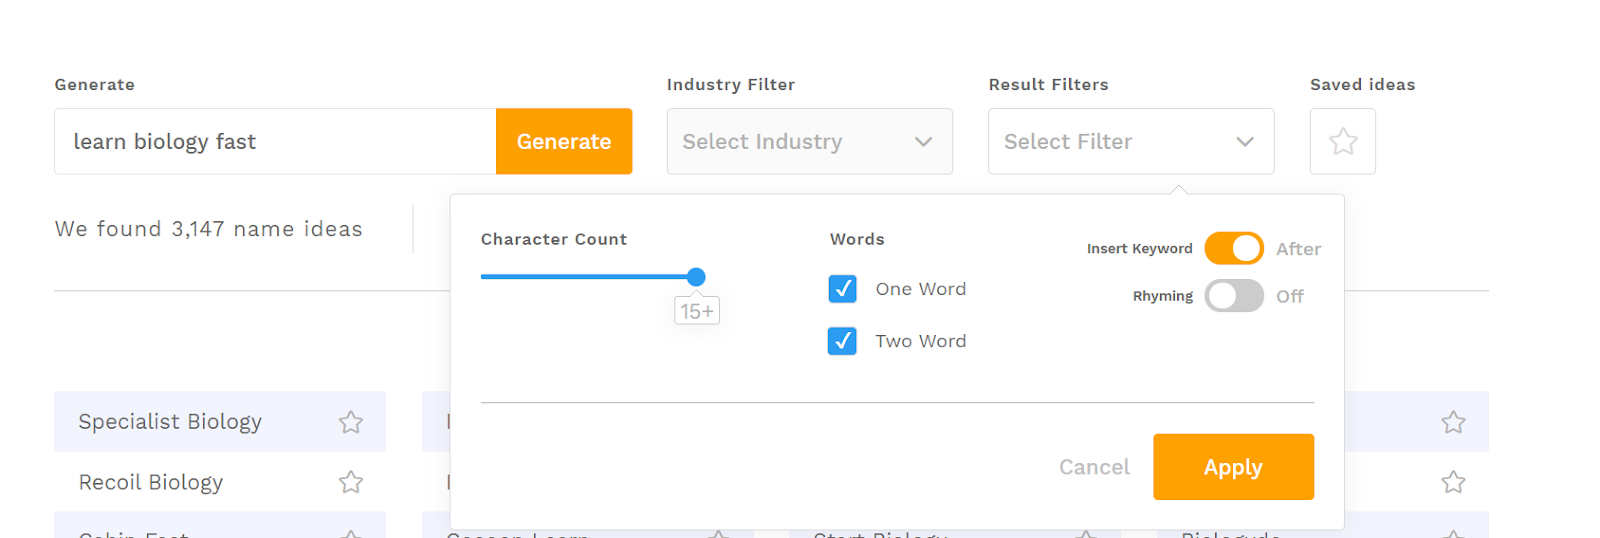 Choose Insert Keyword and avoid Rhyming in the Result Filter and click Apply.